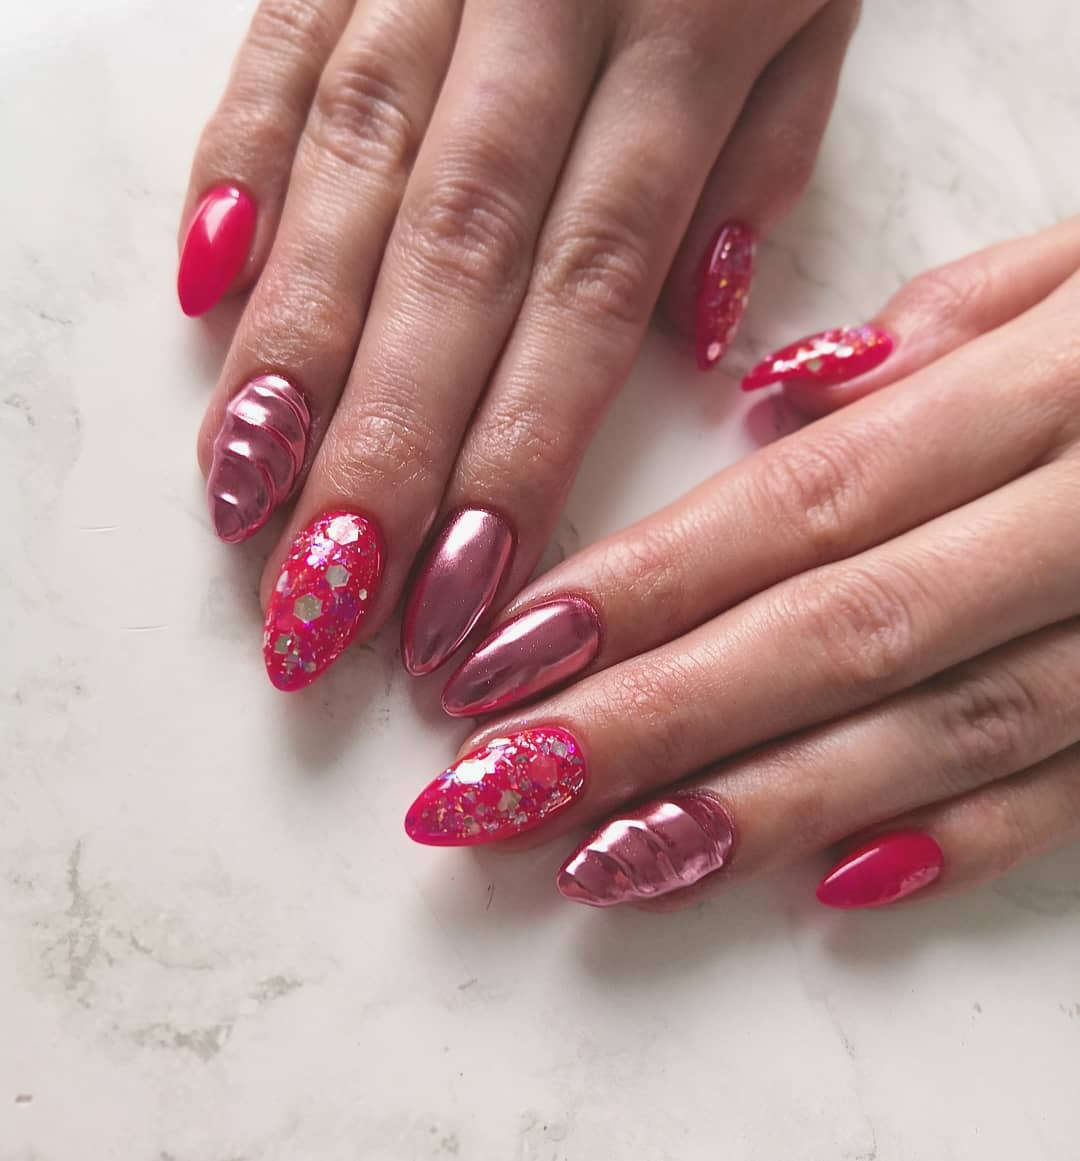 Layered and textured pink chrome nails